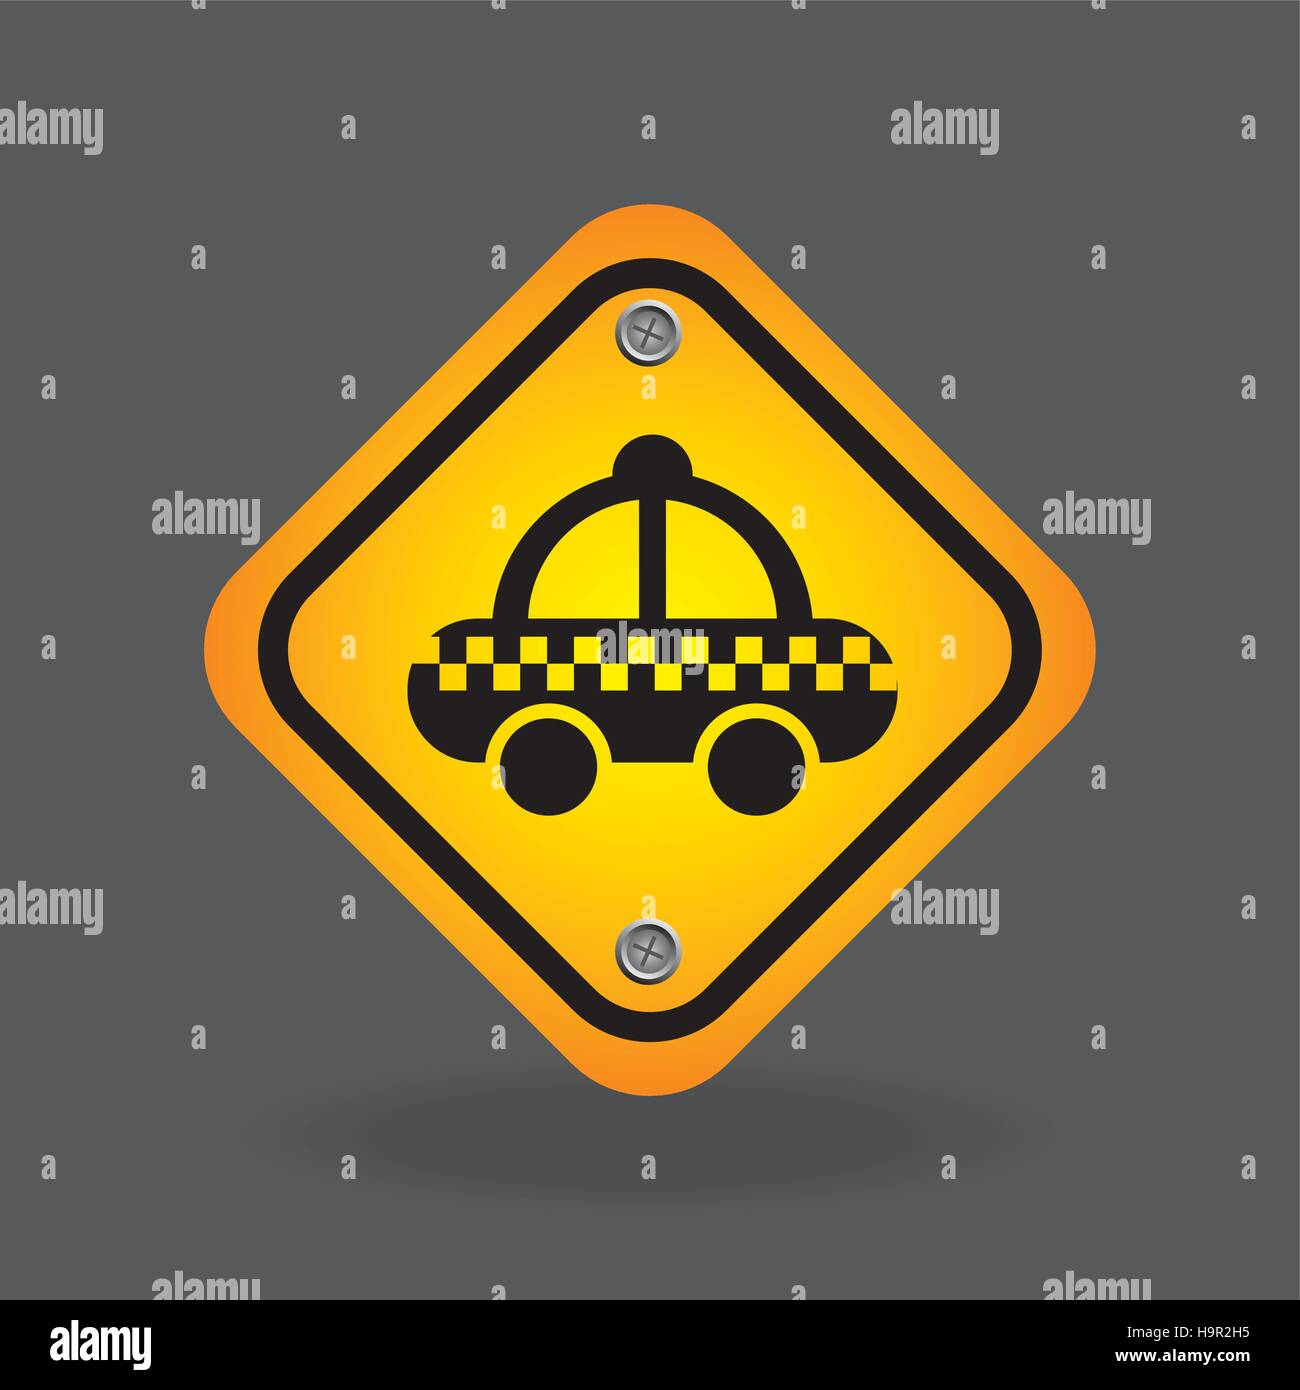 taxi yellow road street sign vector illustration eps 10 - Stock Vector